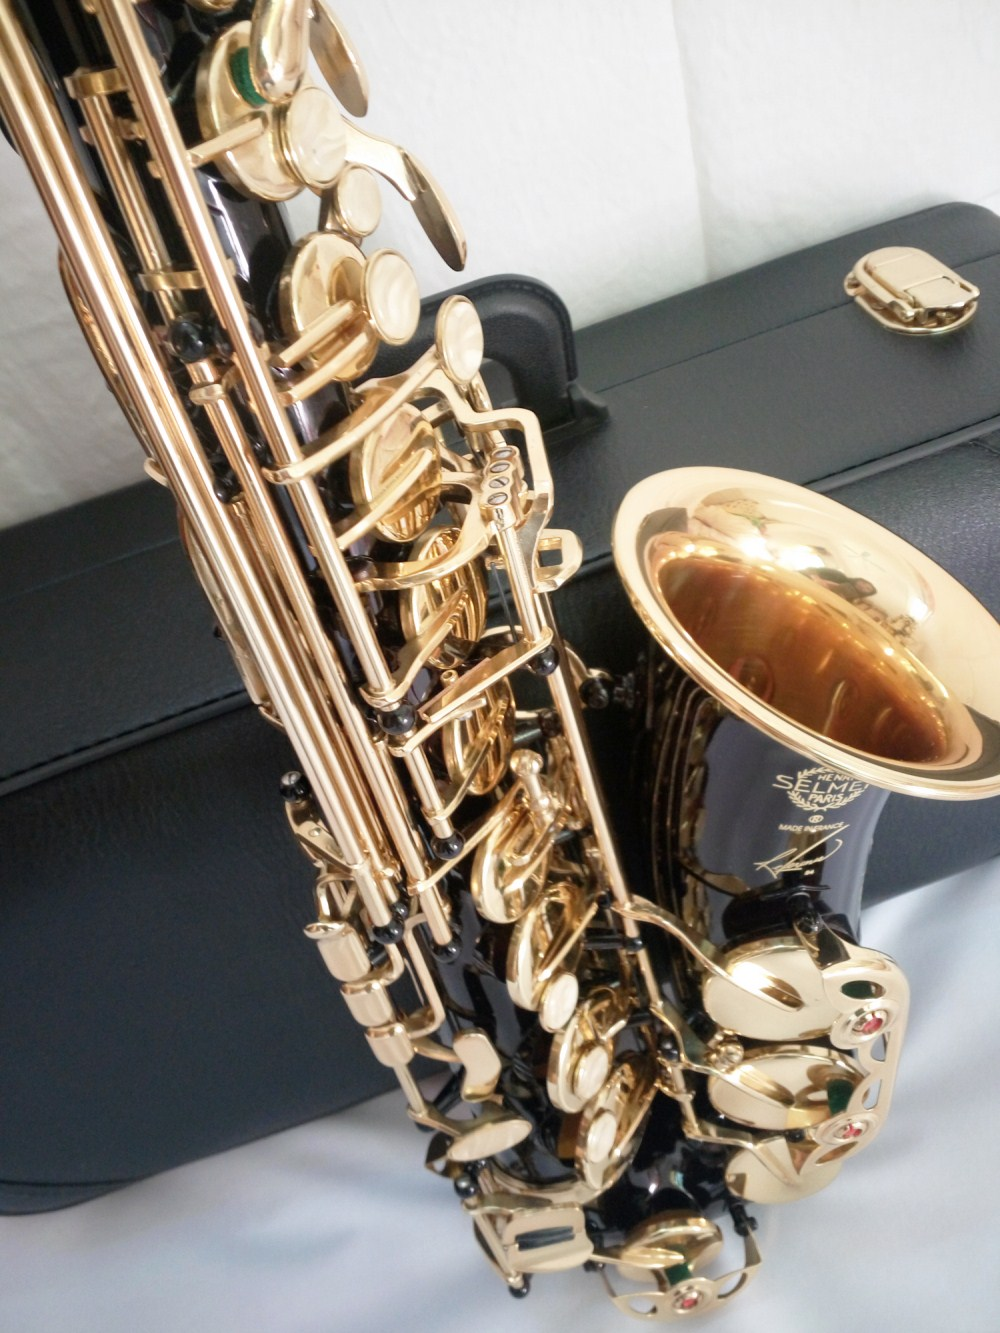 Saxophone Alto New High Quality  E flat France Selmer 54 alto saxophone Biack Nickel Musical Instruments Professional playing france selmer 54 e flat alto saxophone instruments matt black nickel and gold professional performance